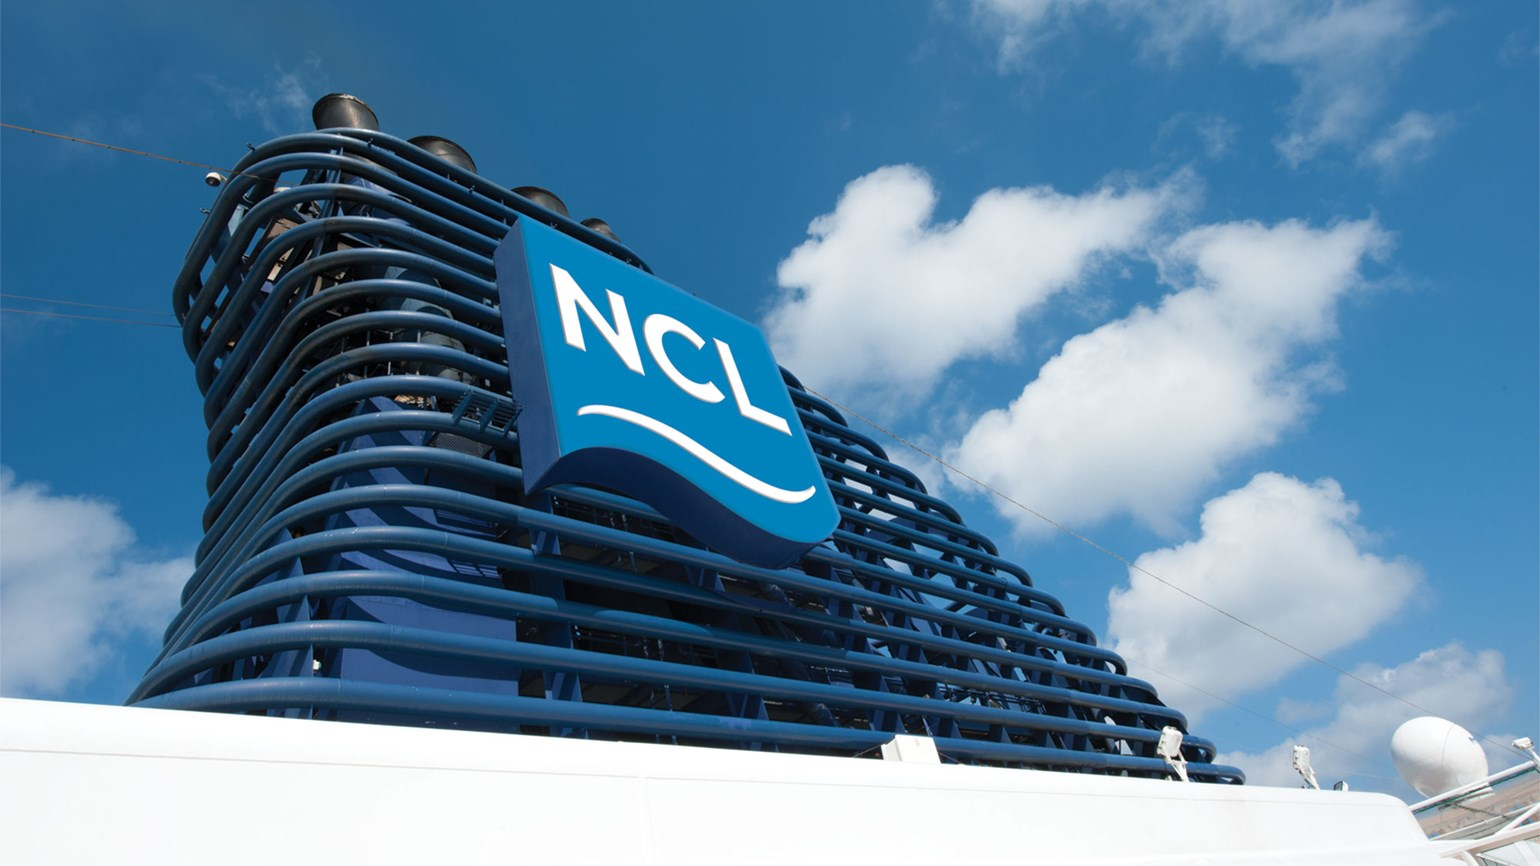 NCL slashes prices on sailings that used to feature Cuba